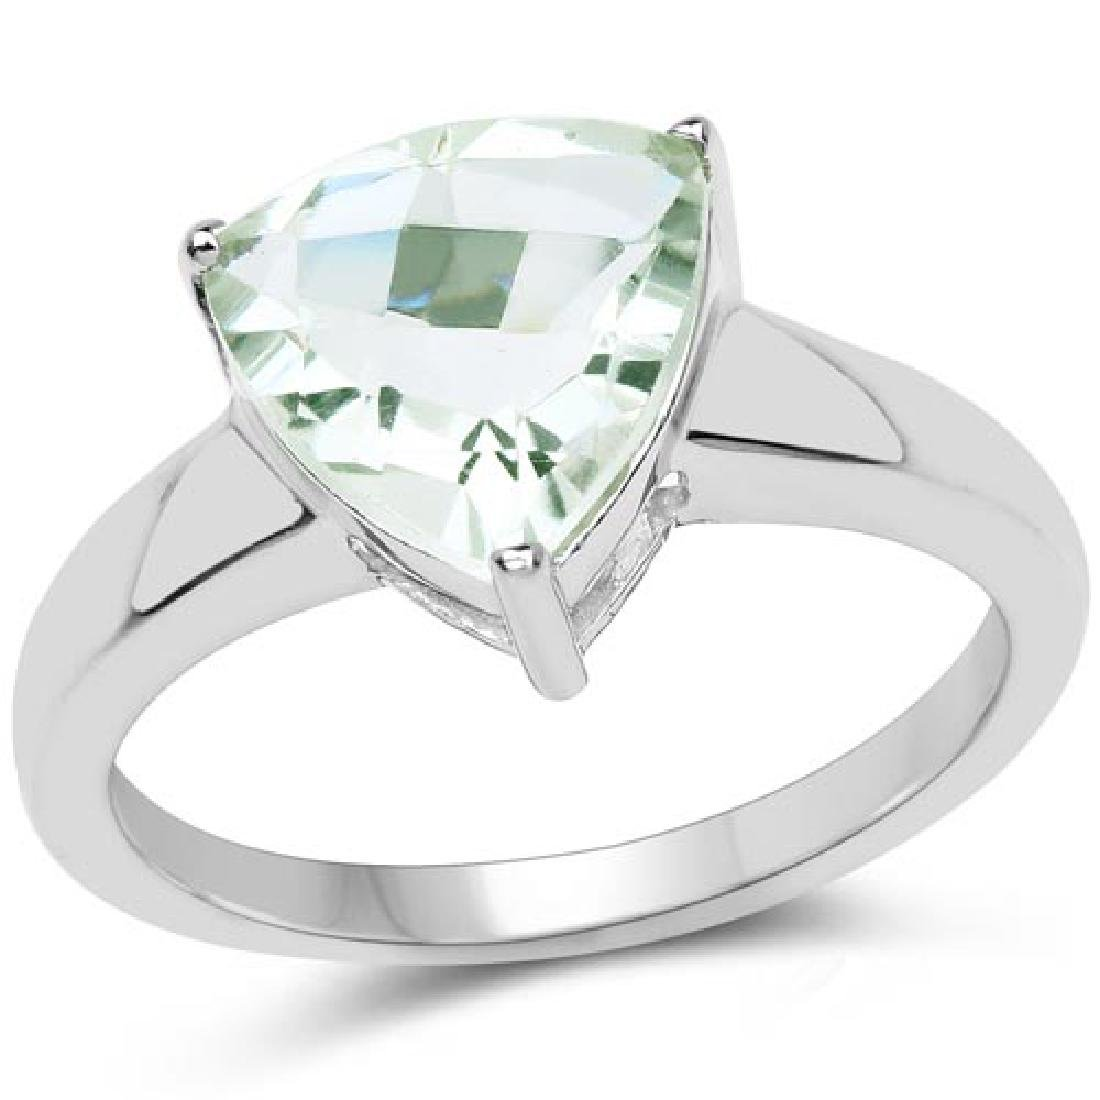 2.25 Carat Genuine Green Amethyst .925 Sterling Silver